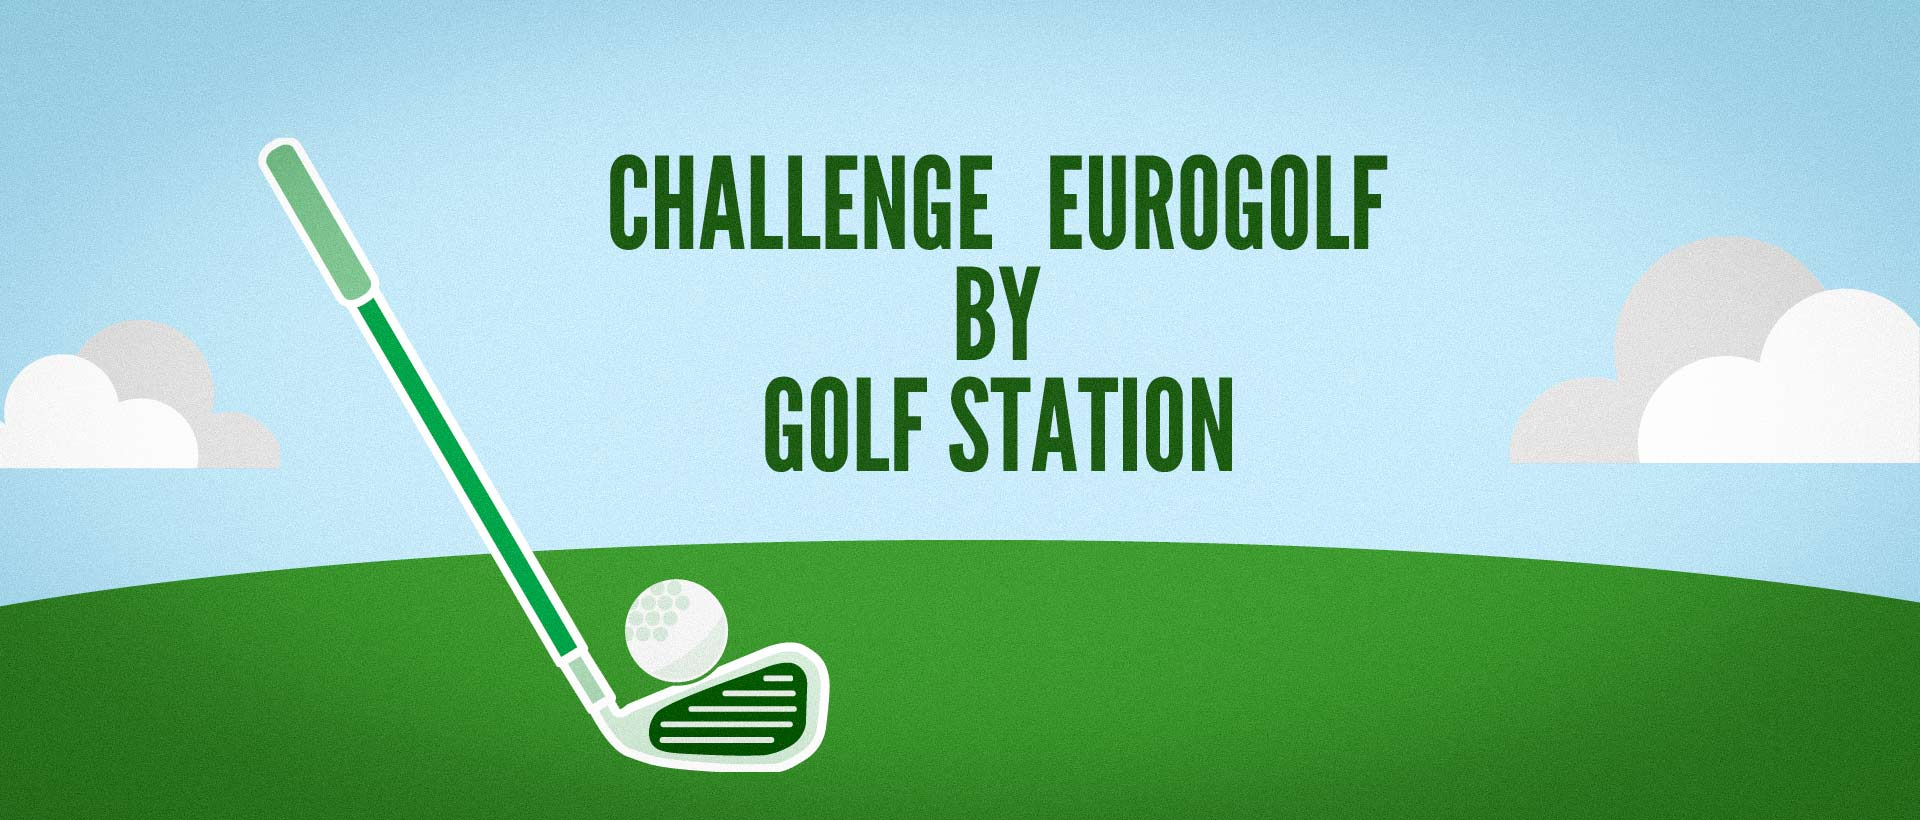 Challenge Eurogolf By Golf Station Header 4